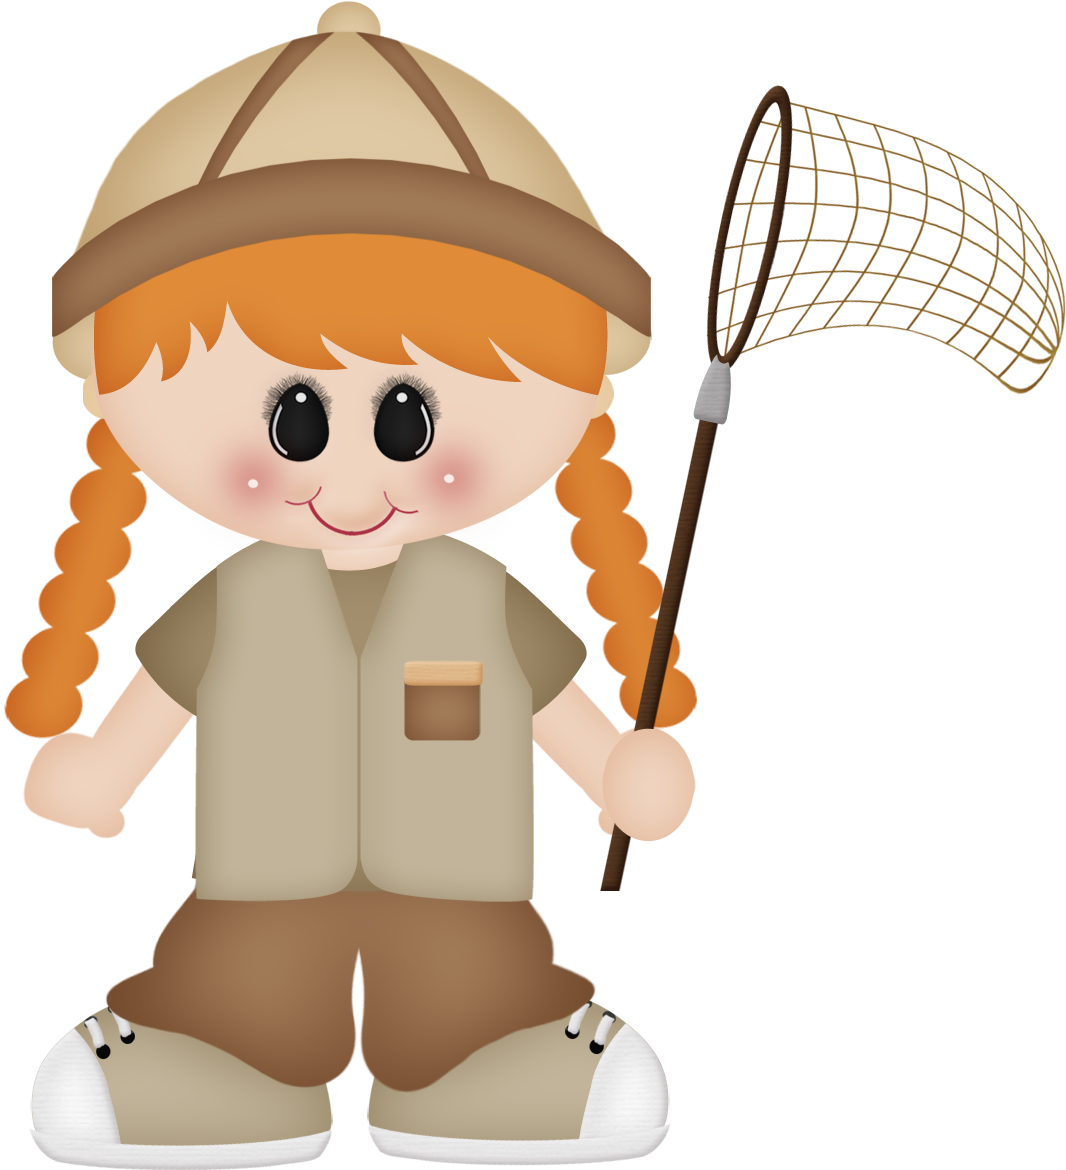 Explorer clipart safari, Explorer safari Transparent FREE.